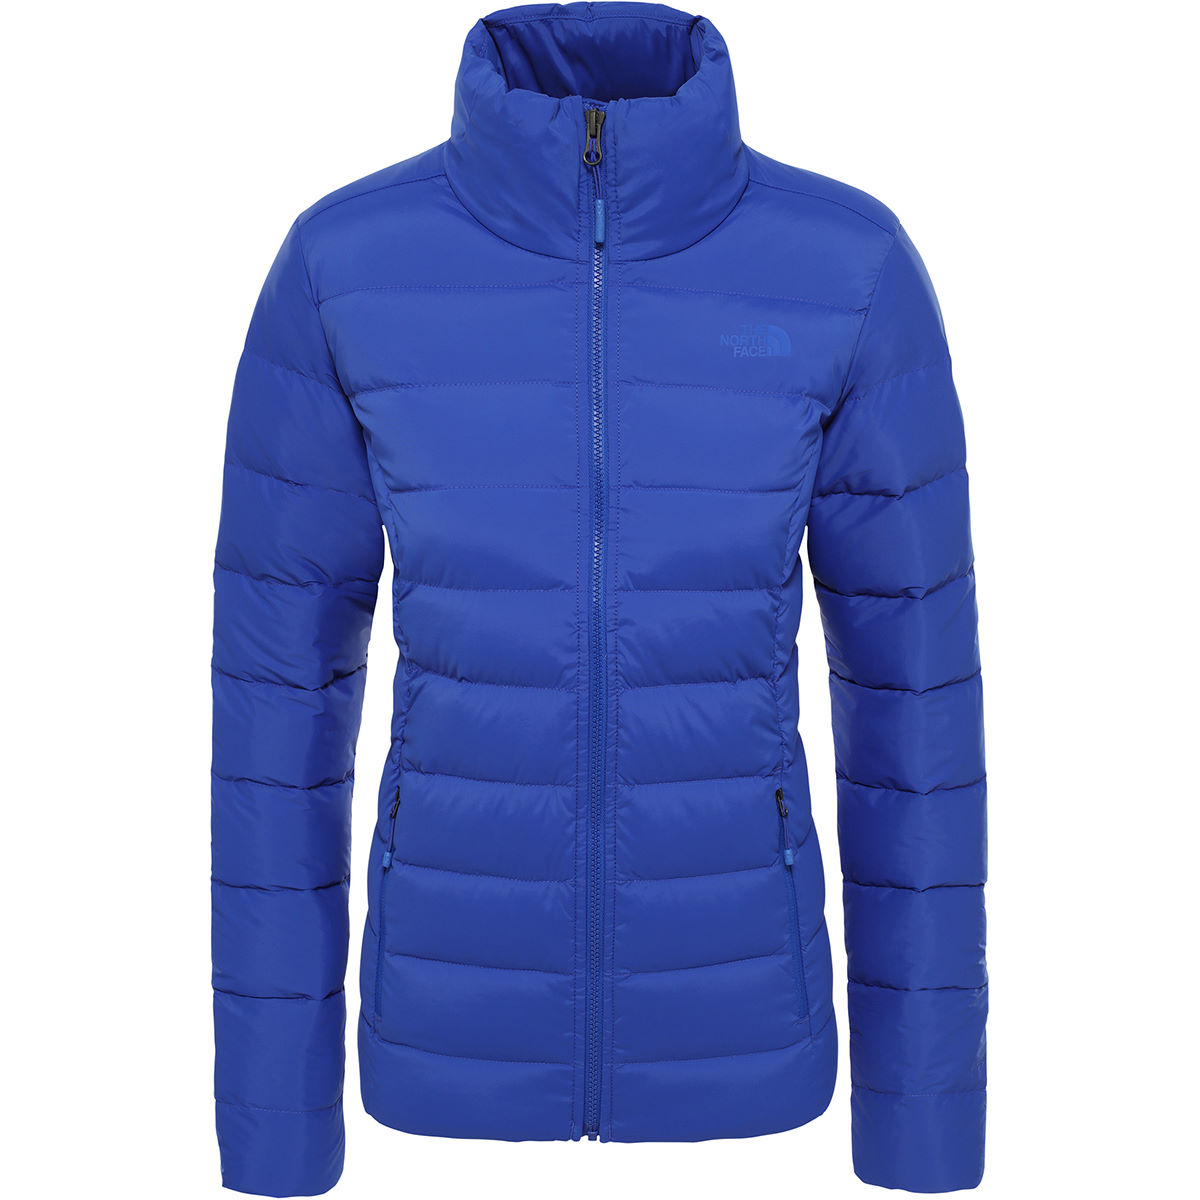 The North Face The North Face Women's Stretch Down Jacket   Jackets